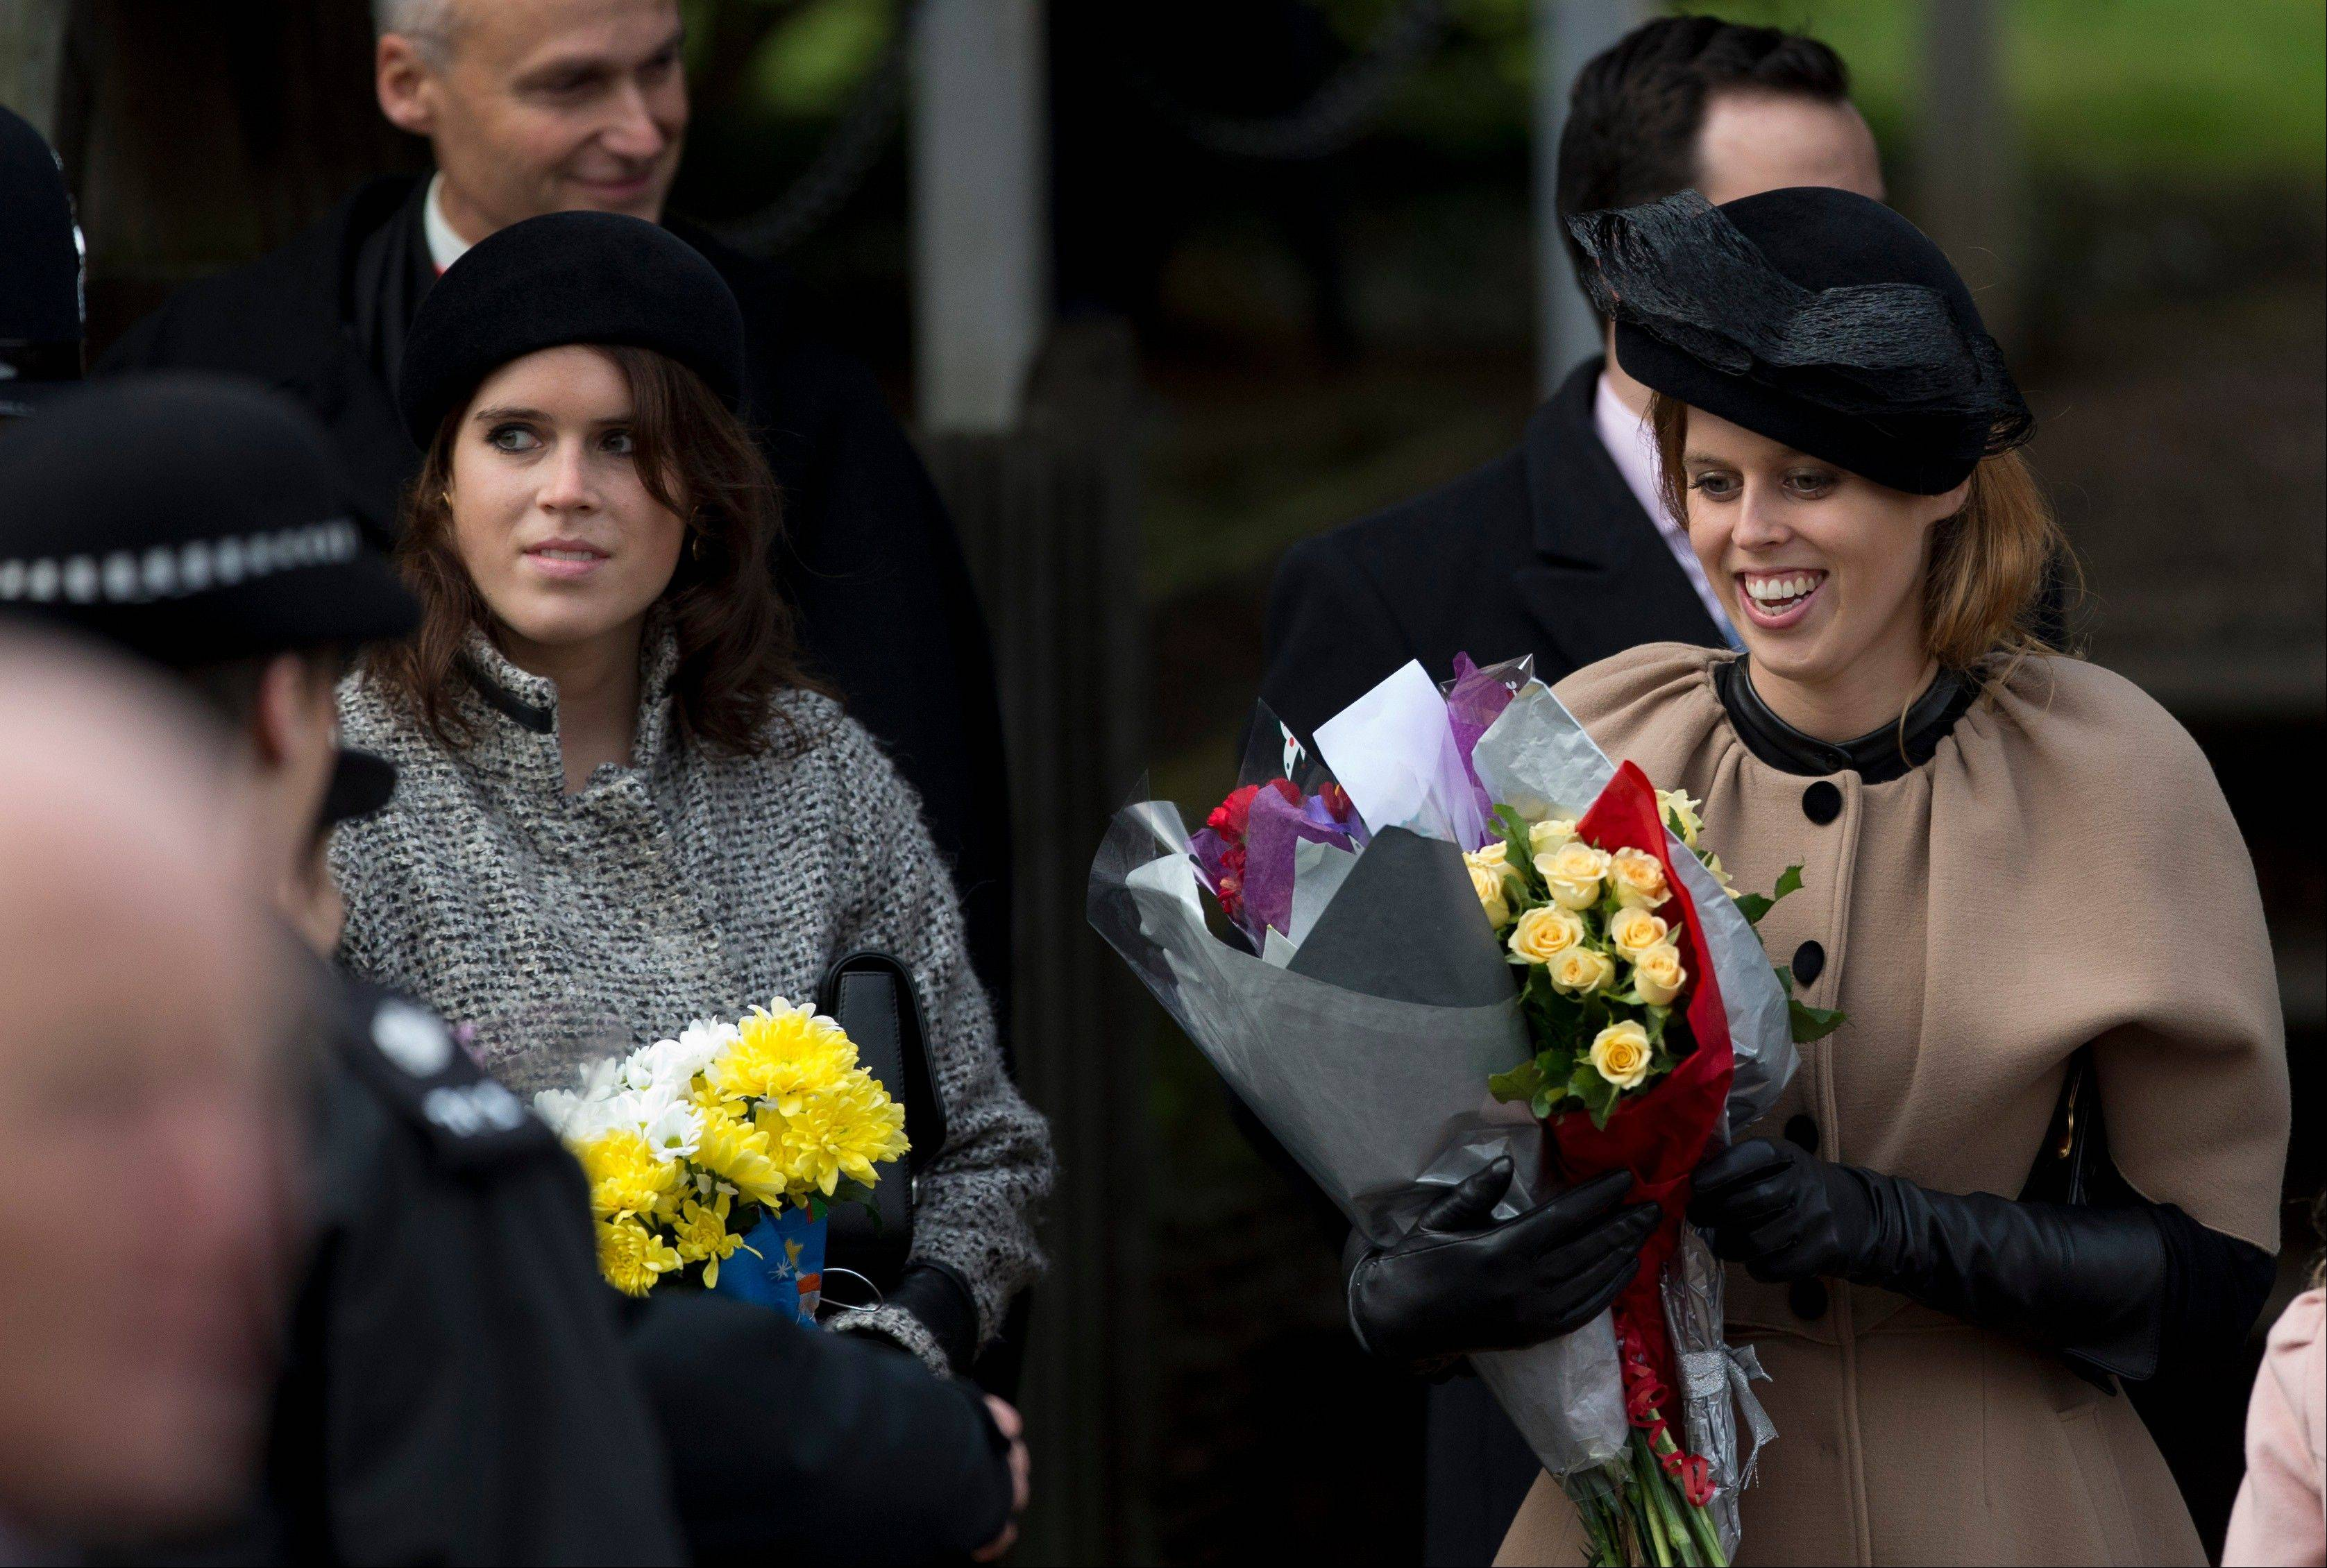 Britain's Queen Elizabeth II's granddaughters Princesses Beatrice, right, and Eugenie, left, hold flowers the Queen received from children after attending the British royal family's traditional Christmas Day church service in Sandringham, England, Tuesday, Dec. 25, 2012.